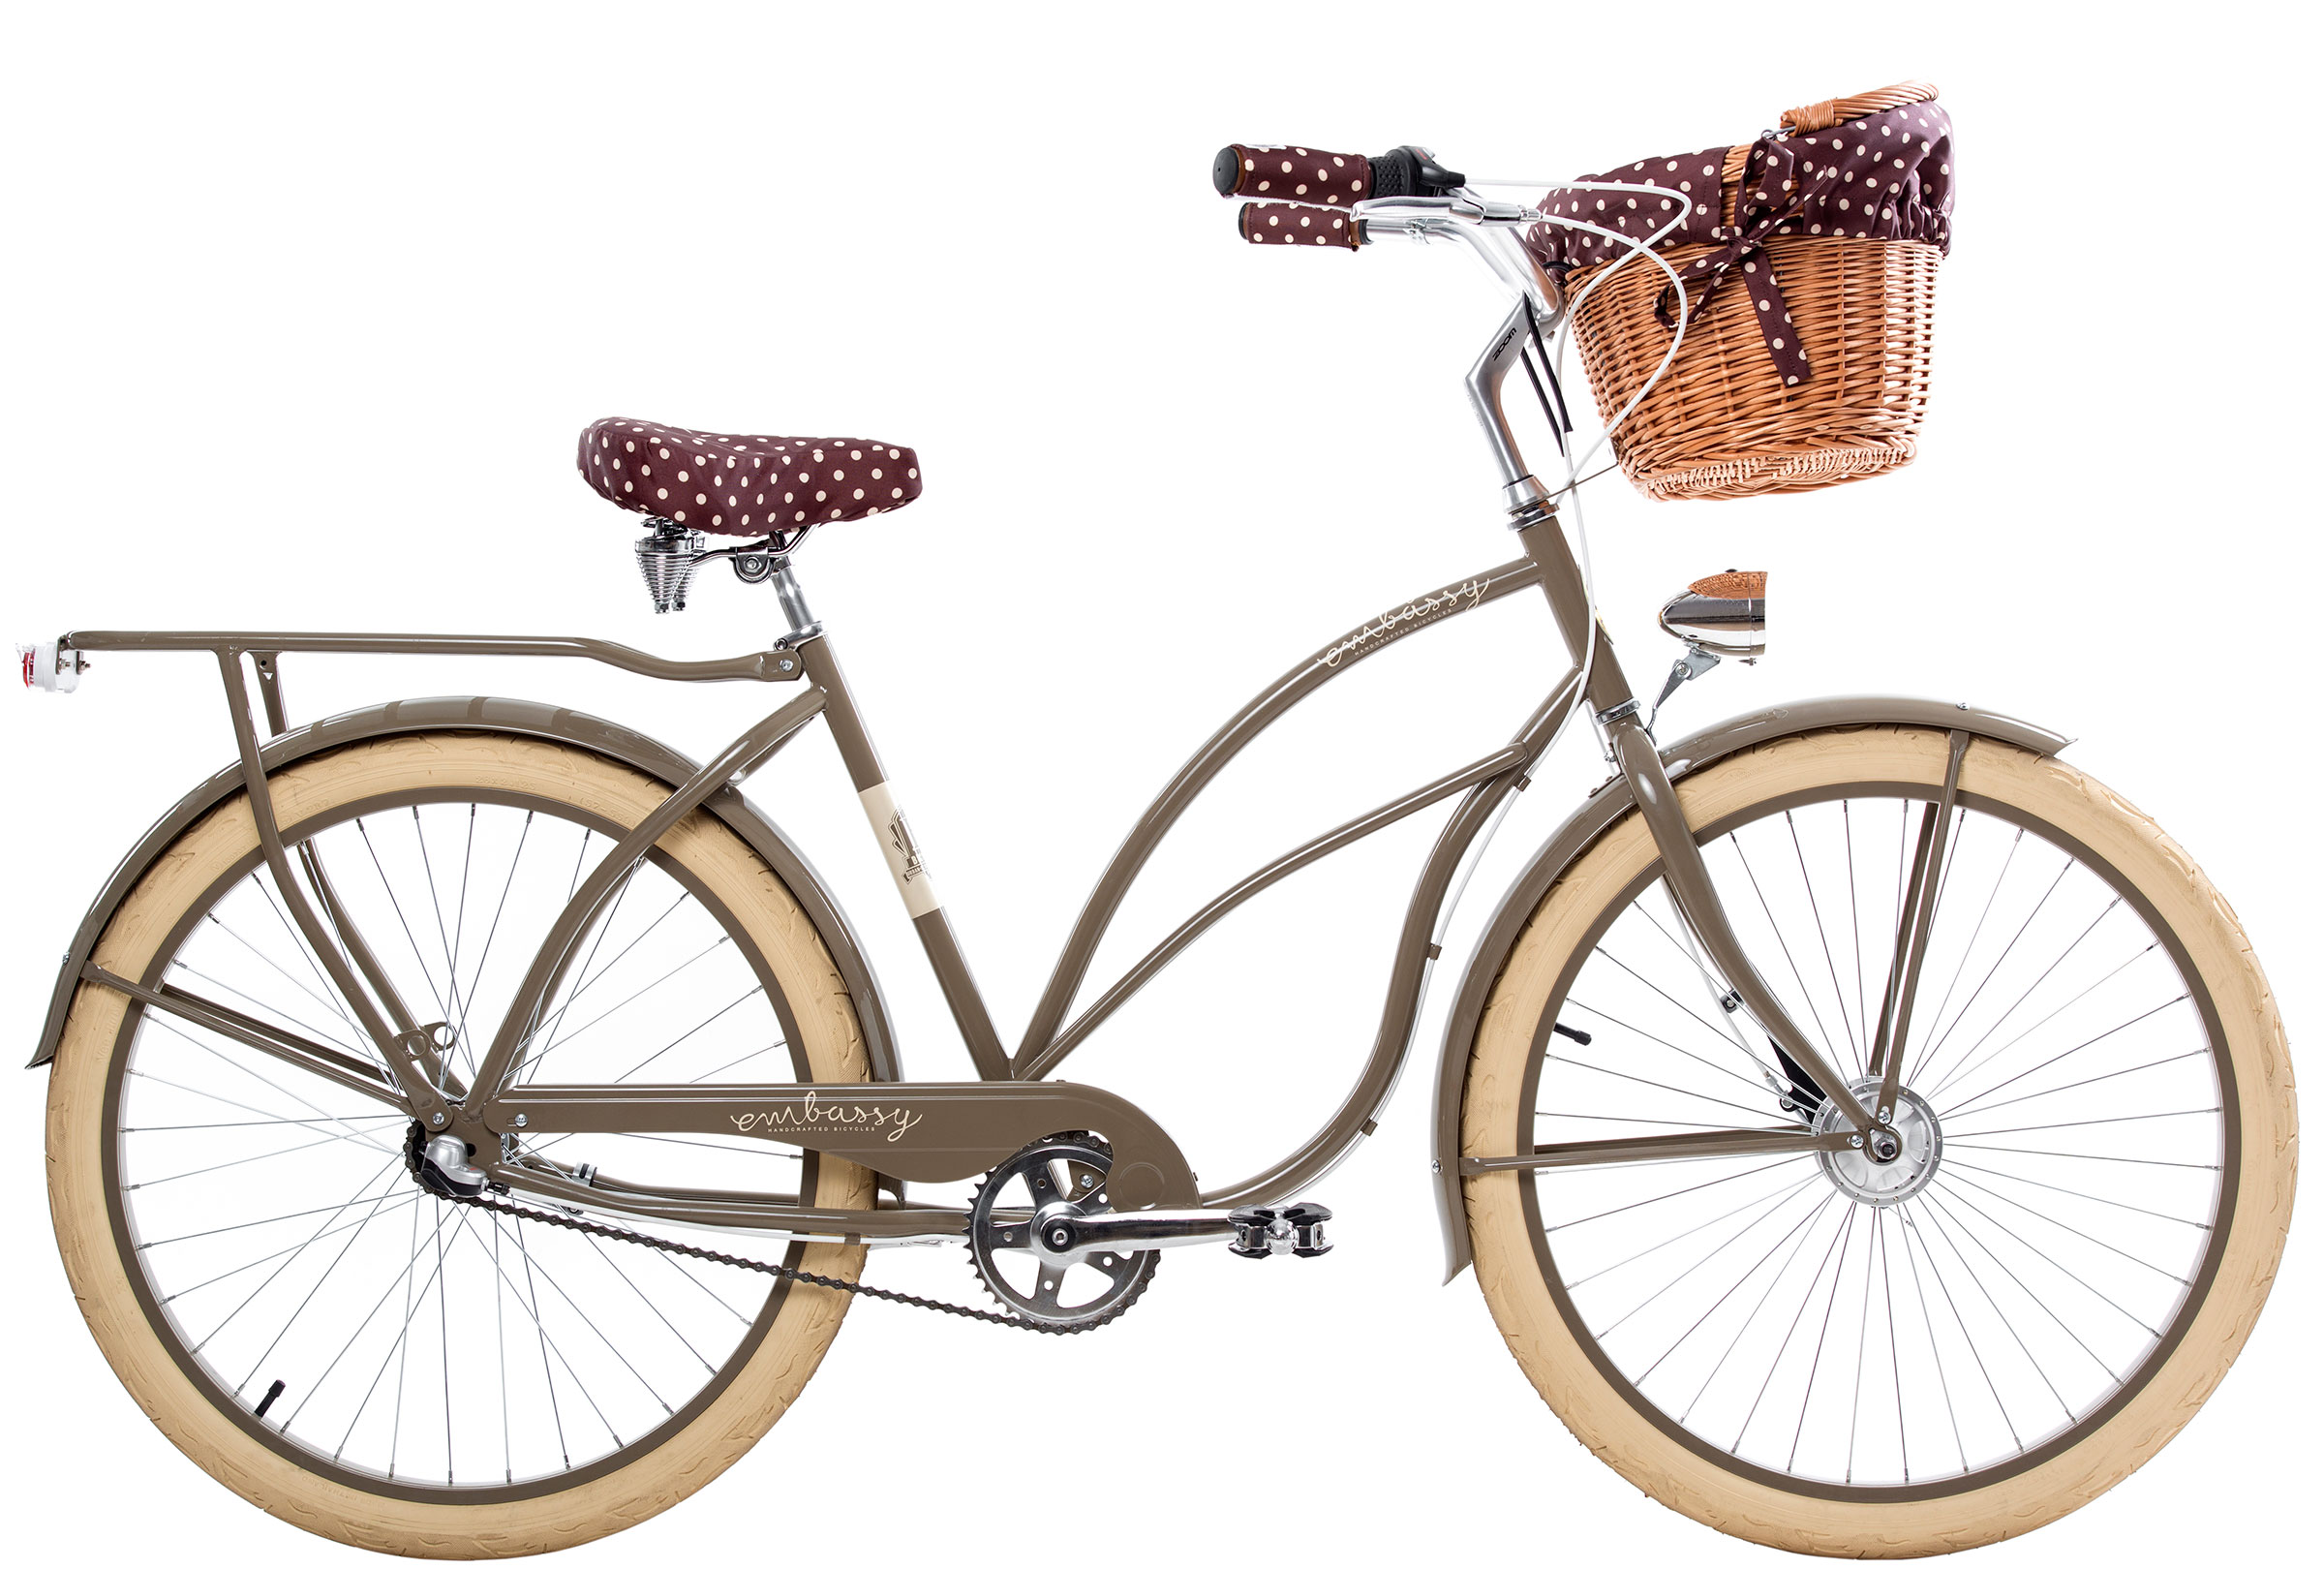 bicicleta cl sica marr n golden favoritebike. Black Bedroom Furniture Sets. Home Design Ideas